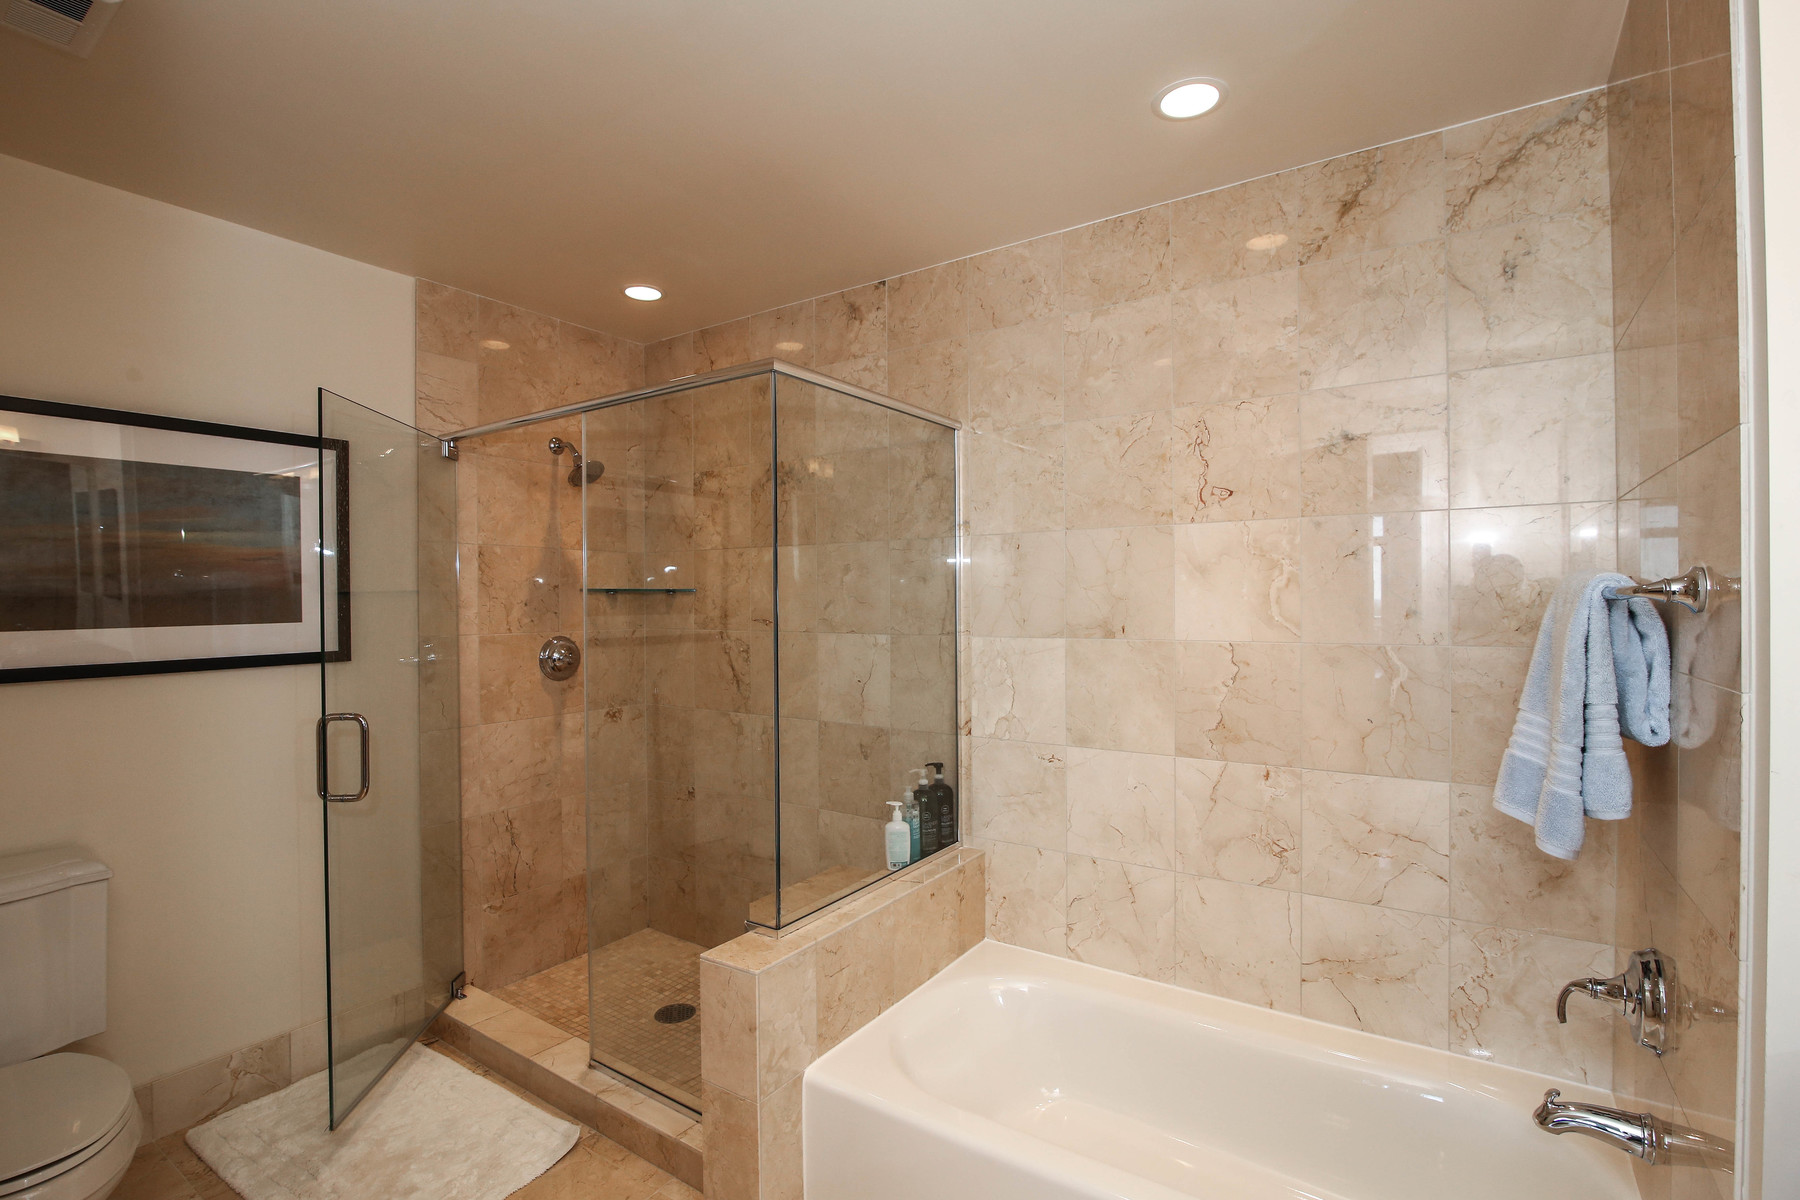 Additional photo for property listing at One Park Crest 8220 Crestwood Heights Dr 1415 McLean, 弗吉尼亞州 22102 美國